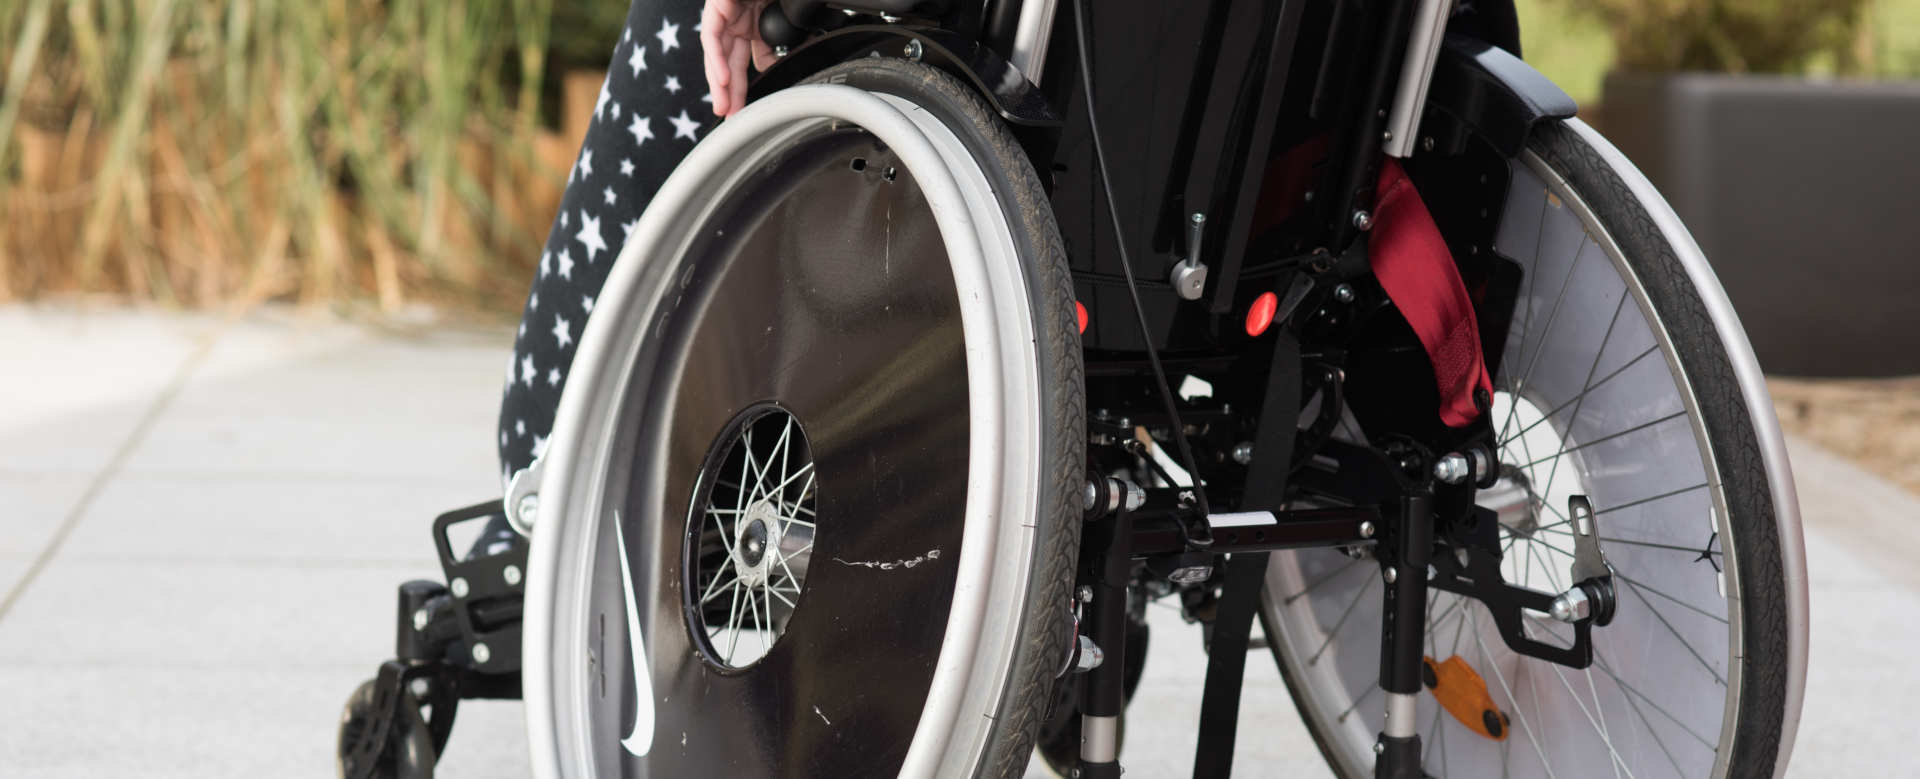 GaryB Wheelchair accesories Home page Slider image 2